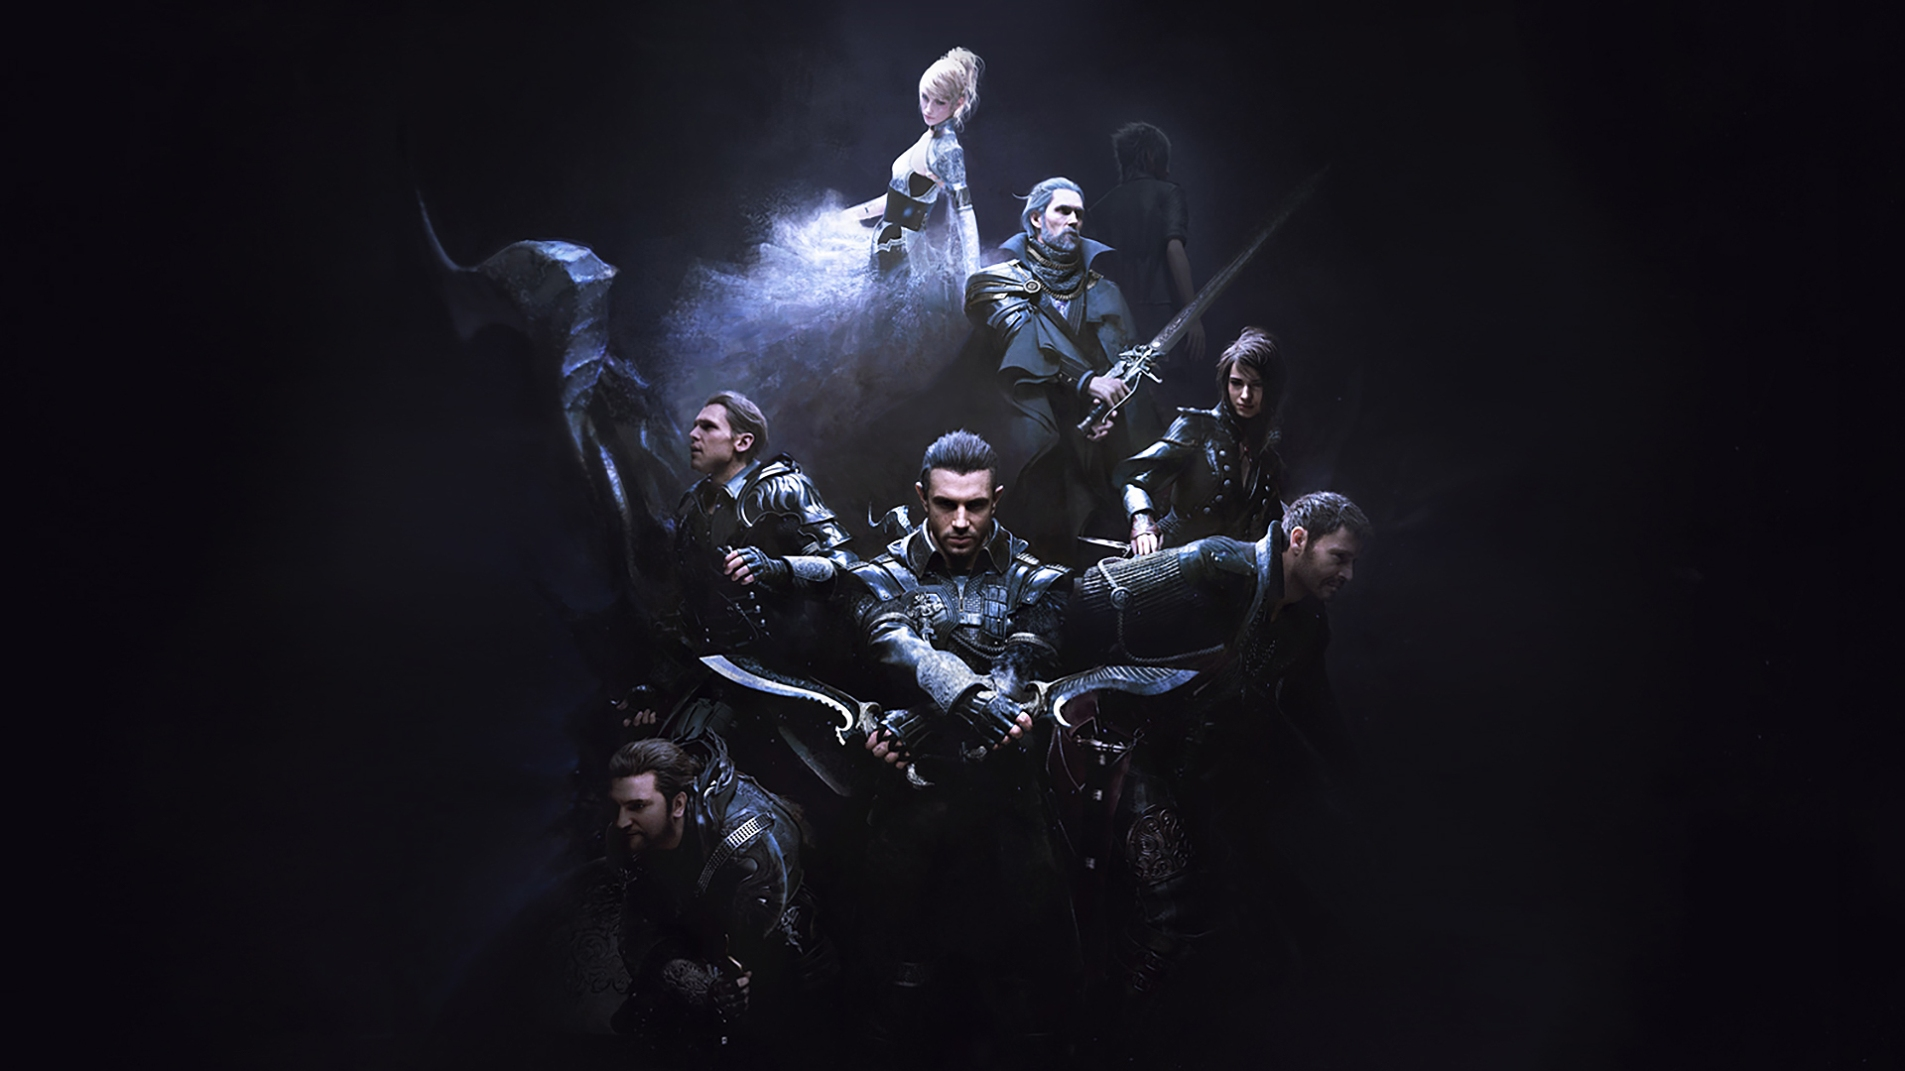 117 Final Fantasy Xv Hd Wallpapers: Get A Fancy Kingsglaive: Final Fantasy XV Wallpaper